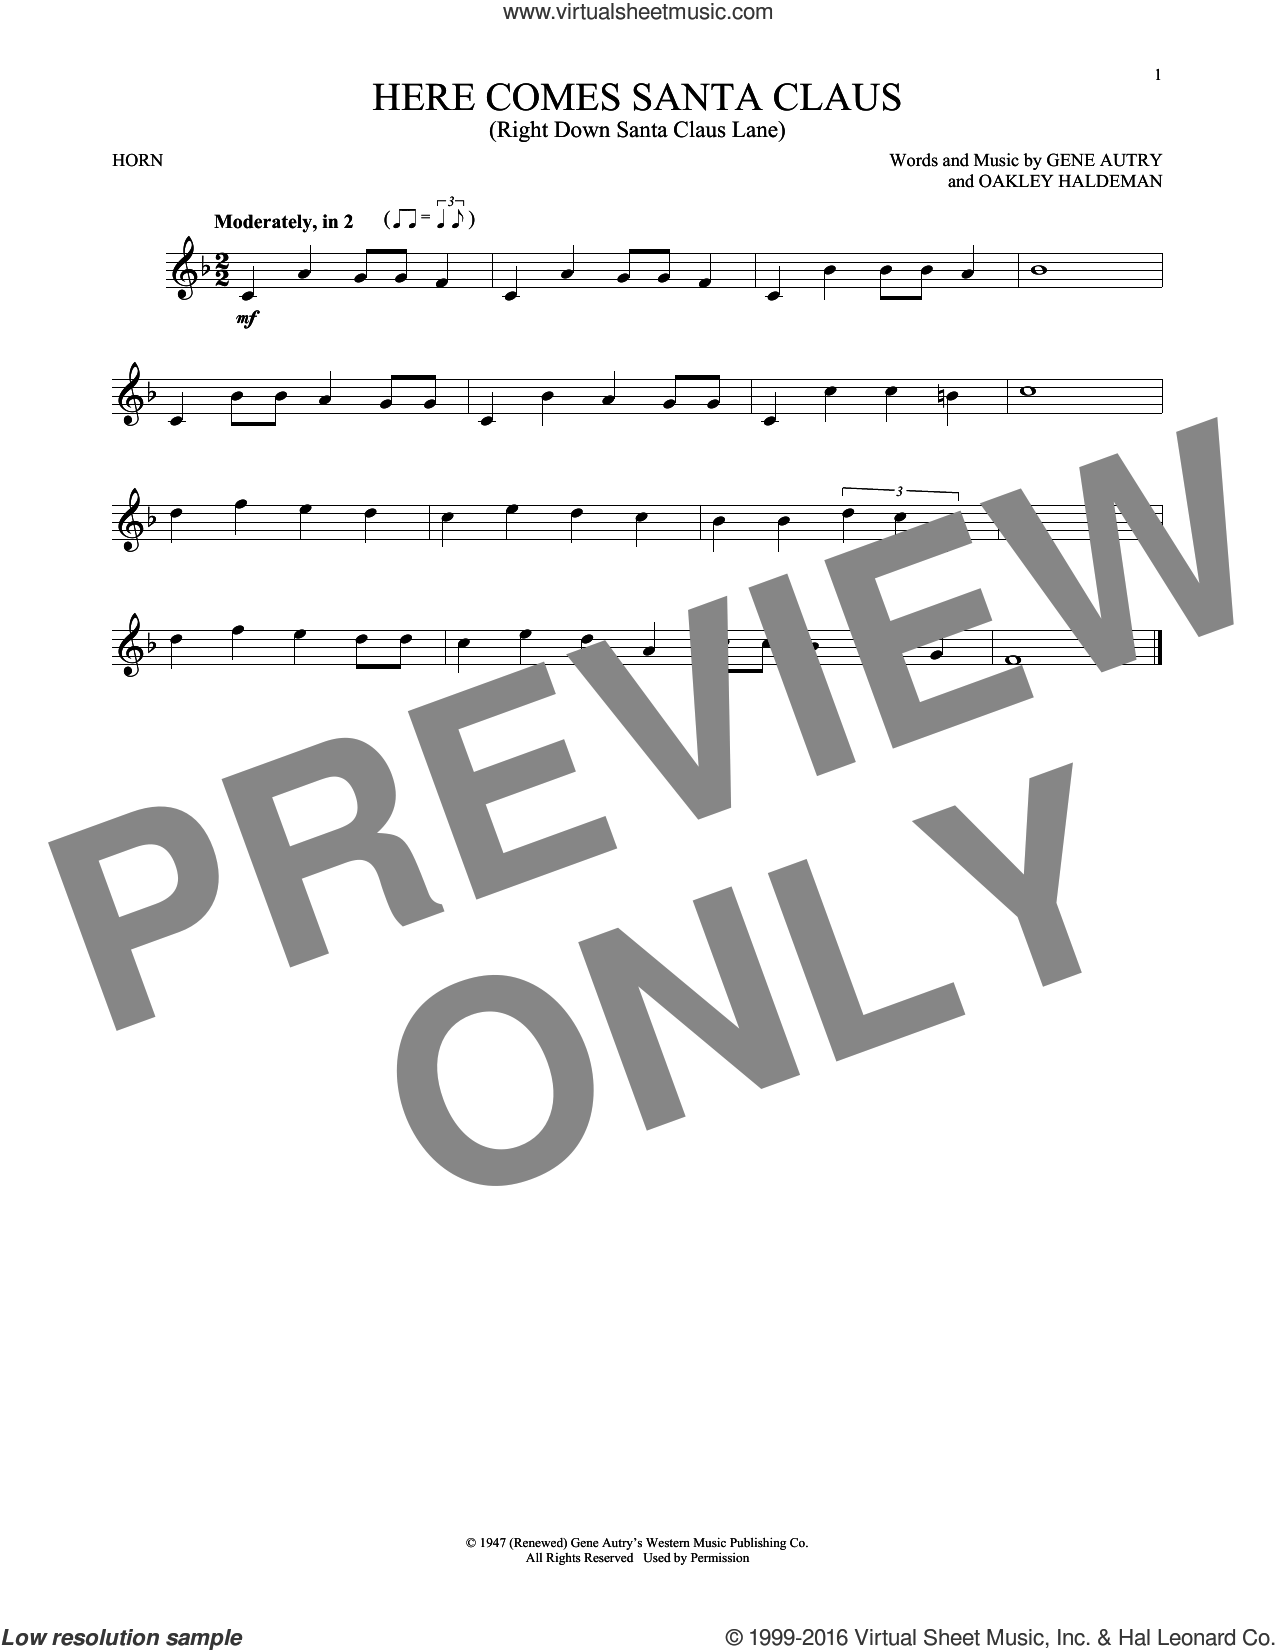 Here Comes Santa Claus (Right Down Santa Claus Lane) sheet music for horn solo by Gene Autry, Carpenters and Oakley Haldeman, intermediate skill level